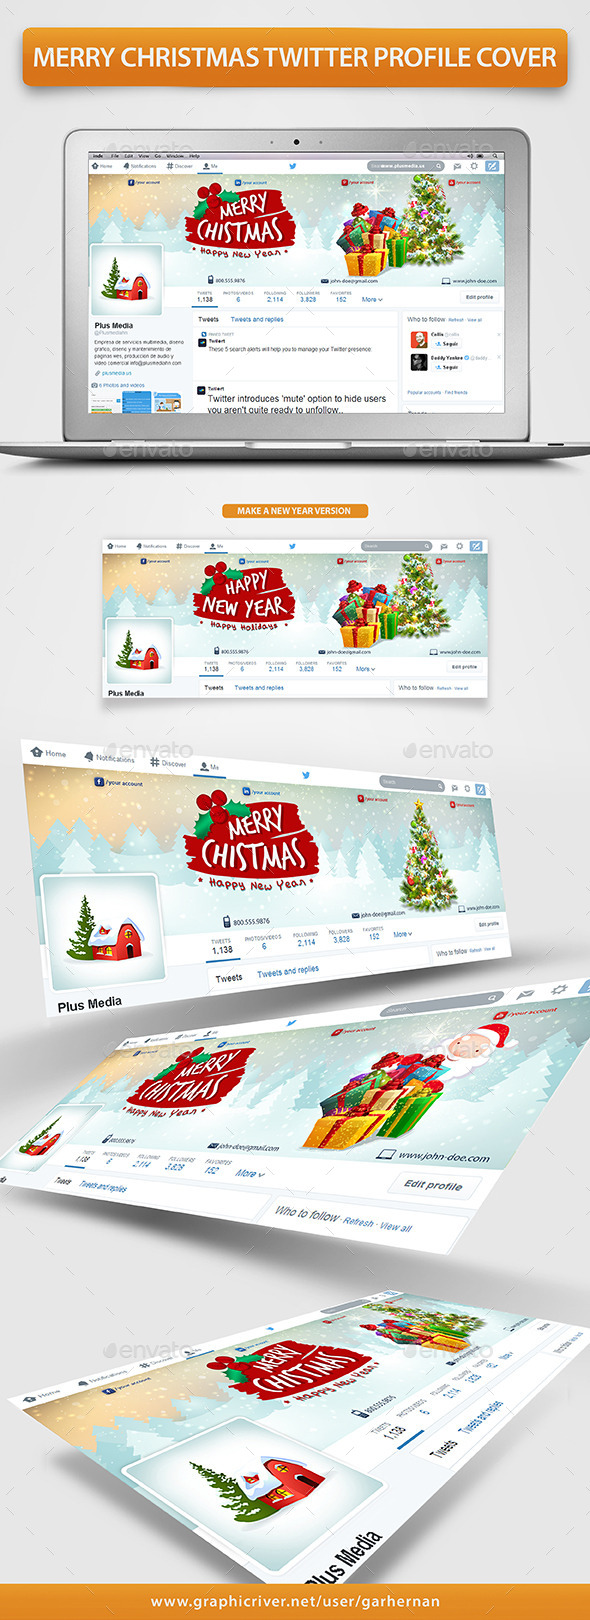 Merry Christmas Twitter Profile Cover - Twitter Social Media